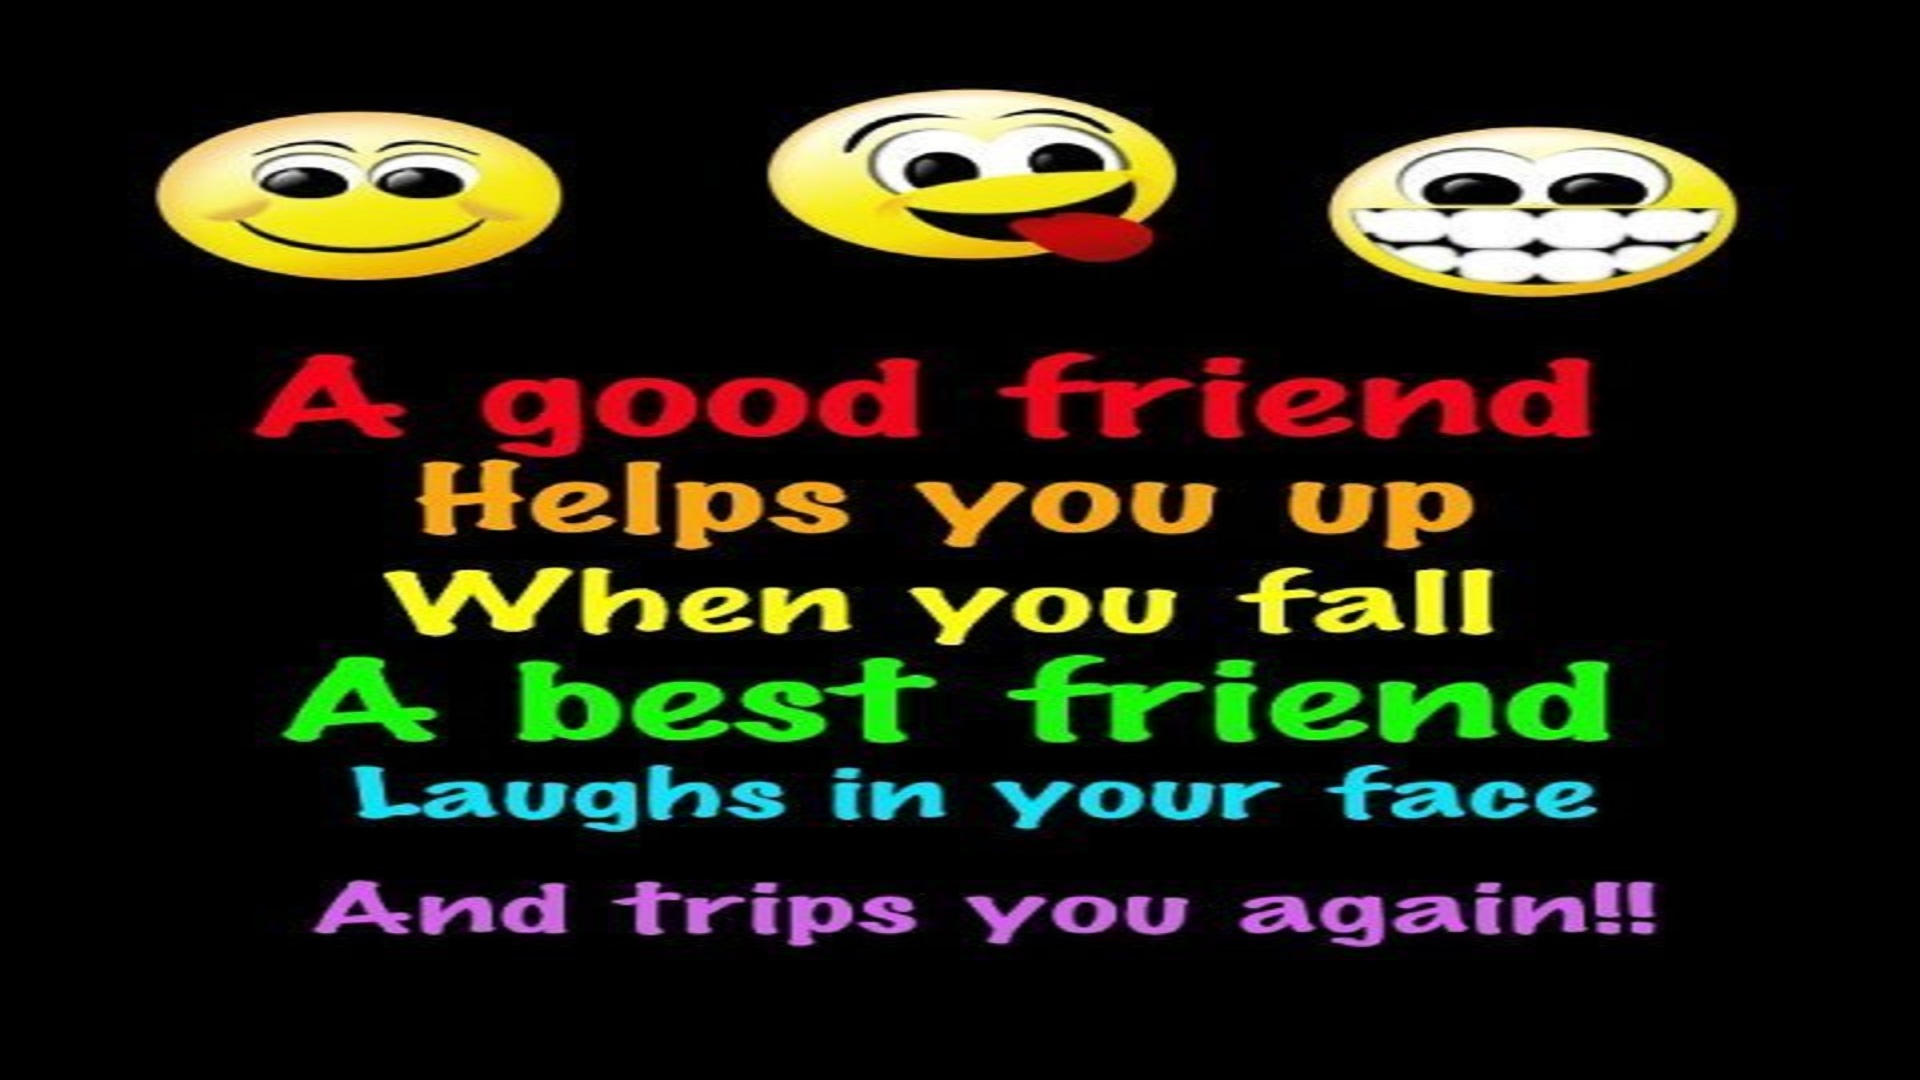 Funny Friendship Wallpaper Download Free